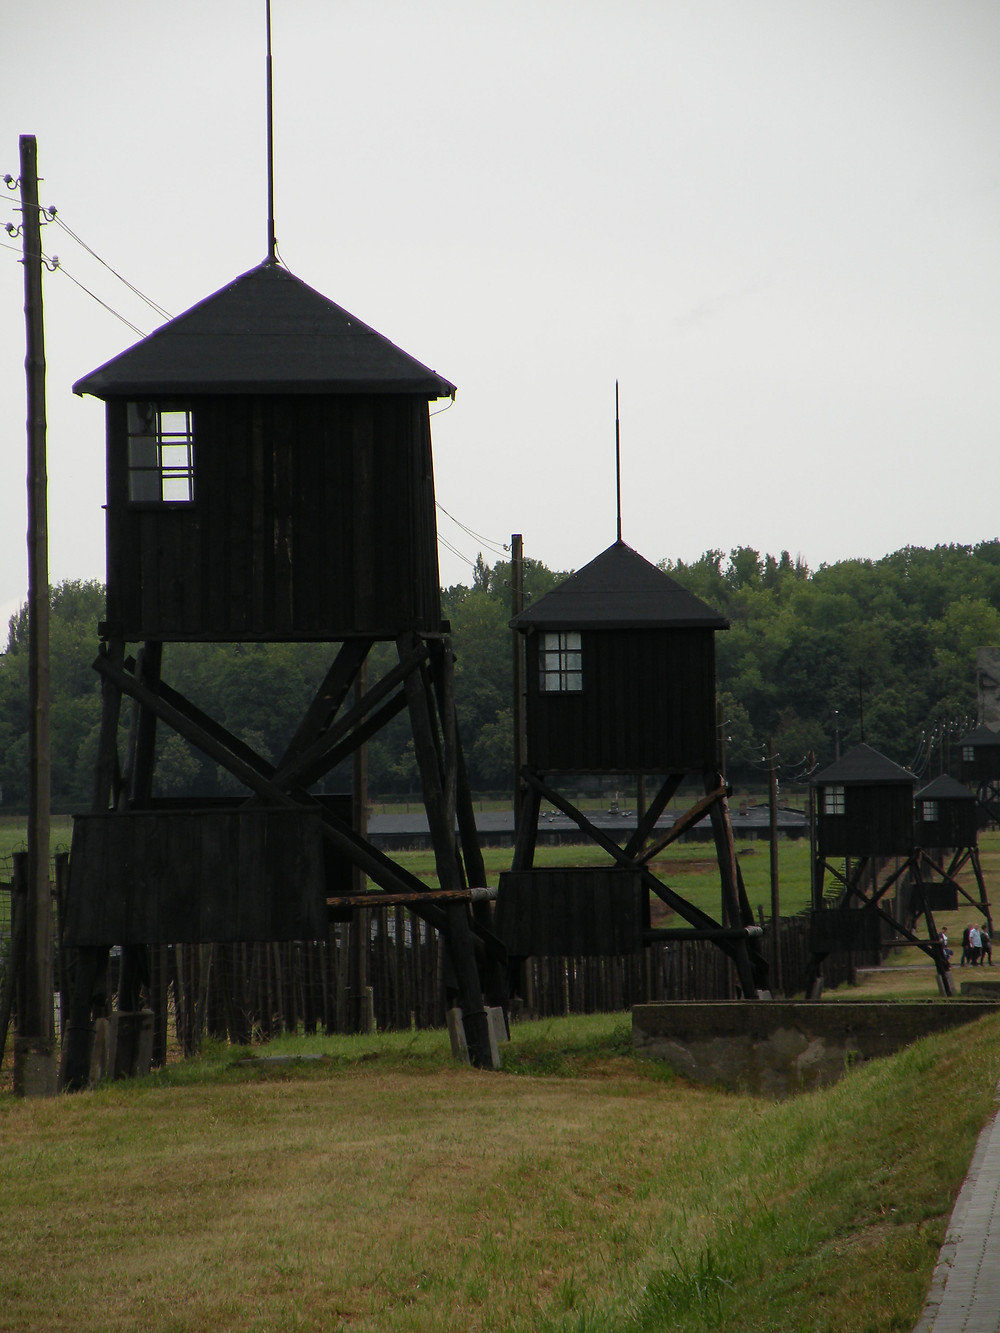 Majdanek - German death camps